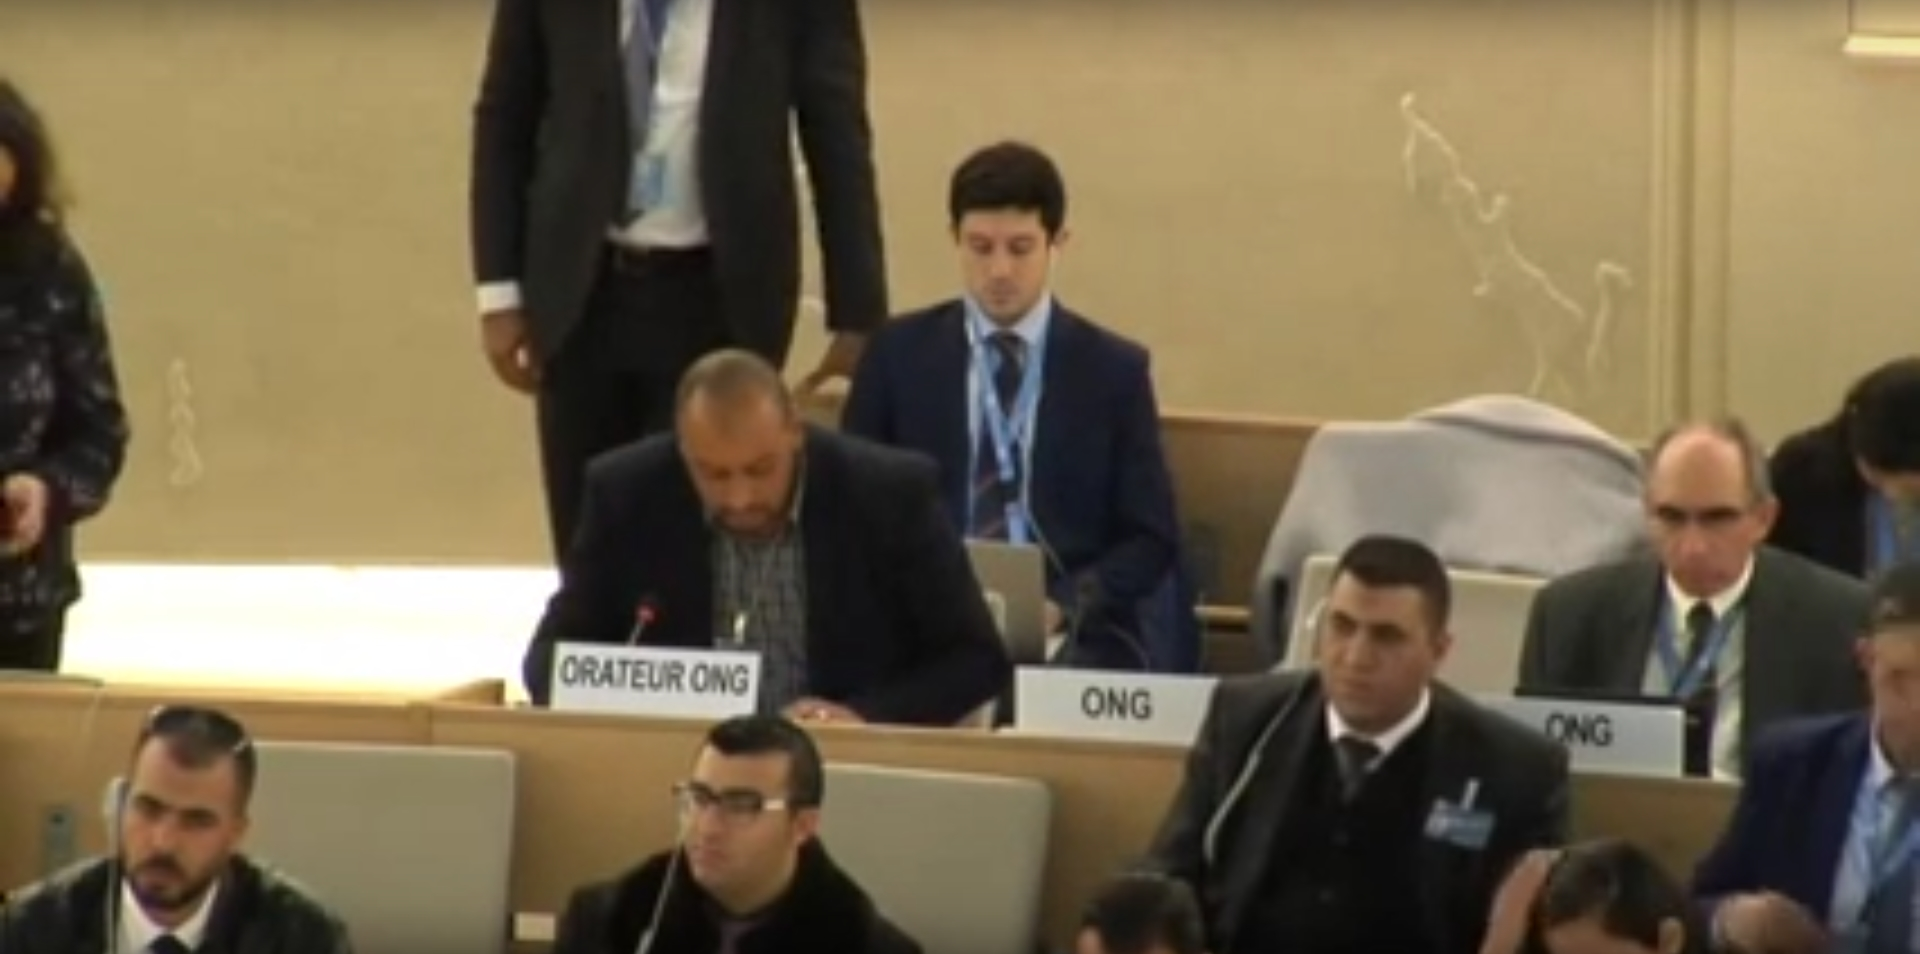 34th Session of the Human Rights Council - GD Item: 7 - Mr Naser Abuhammoud - 20 March 2017